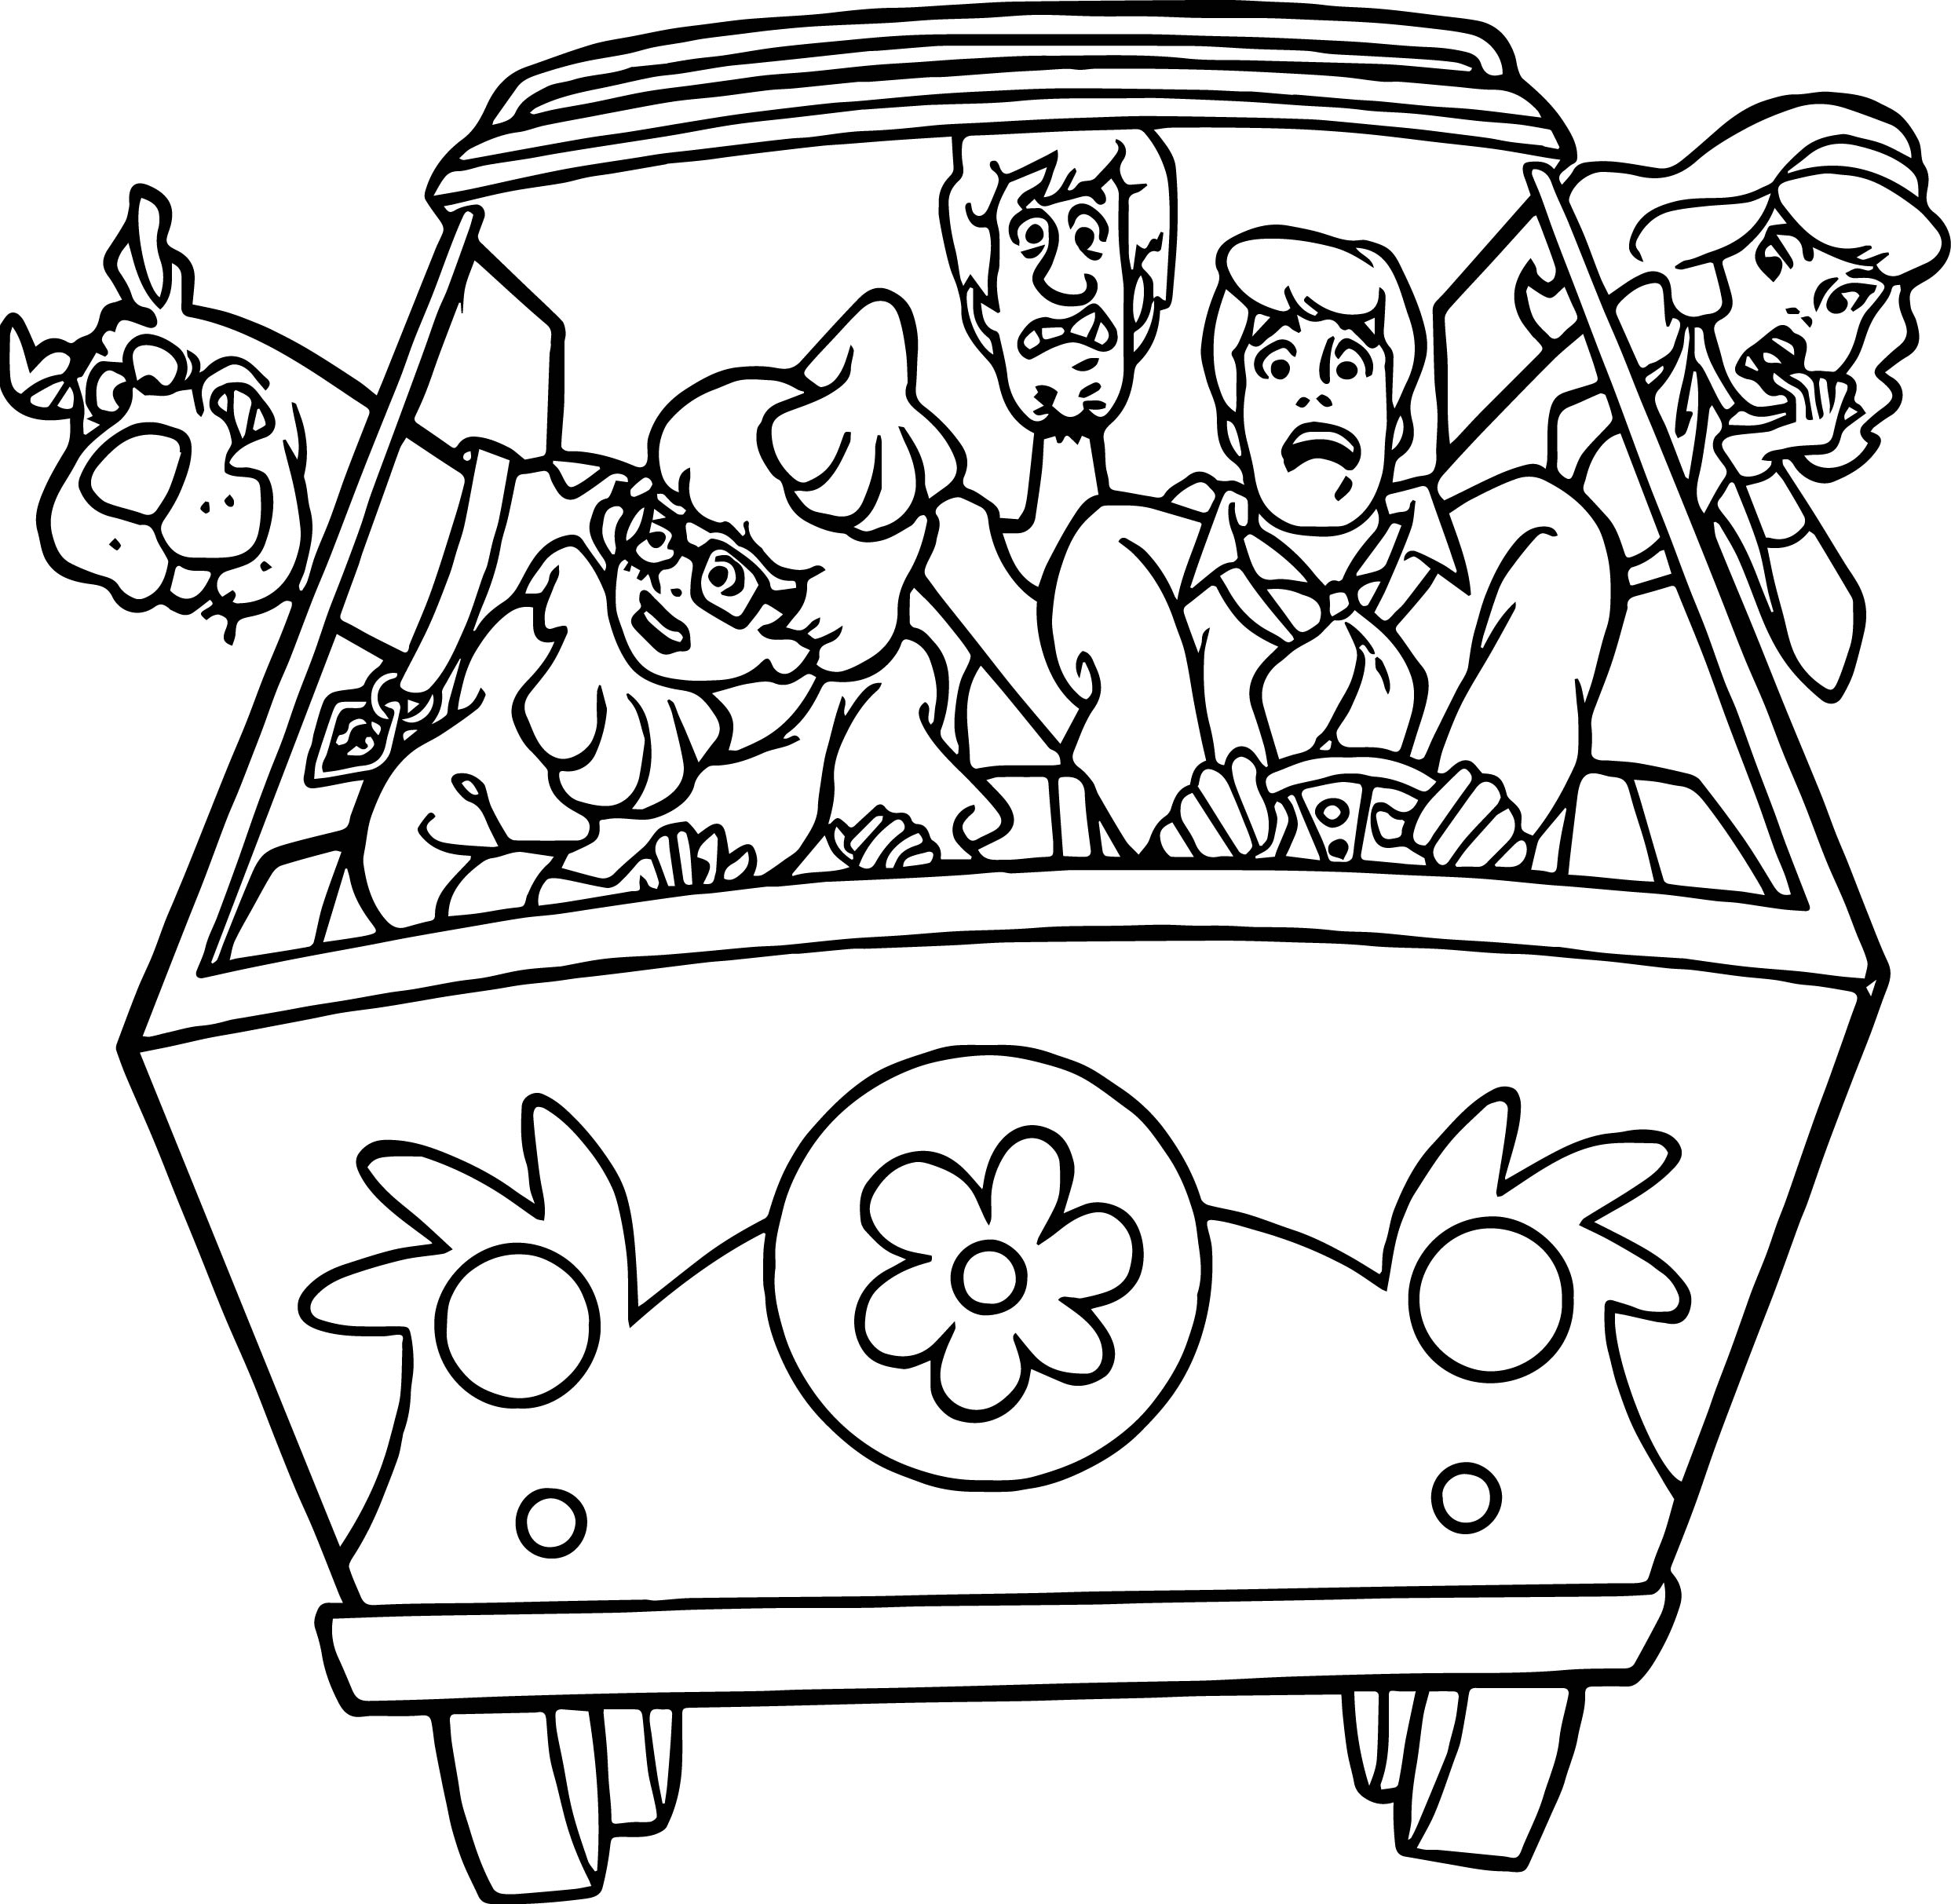 Fast Car Scooby Doo Scream Coloring Page